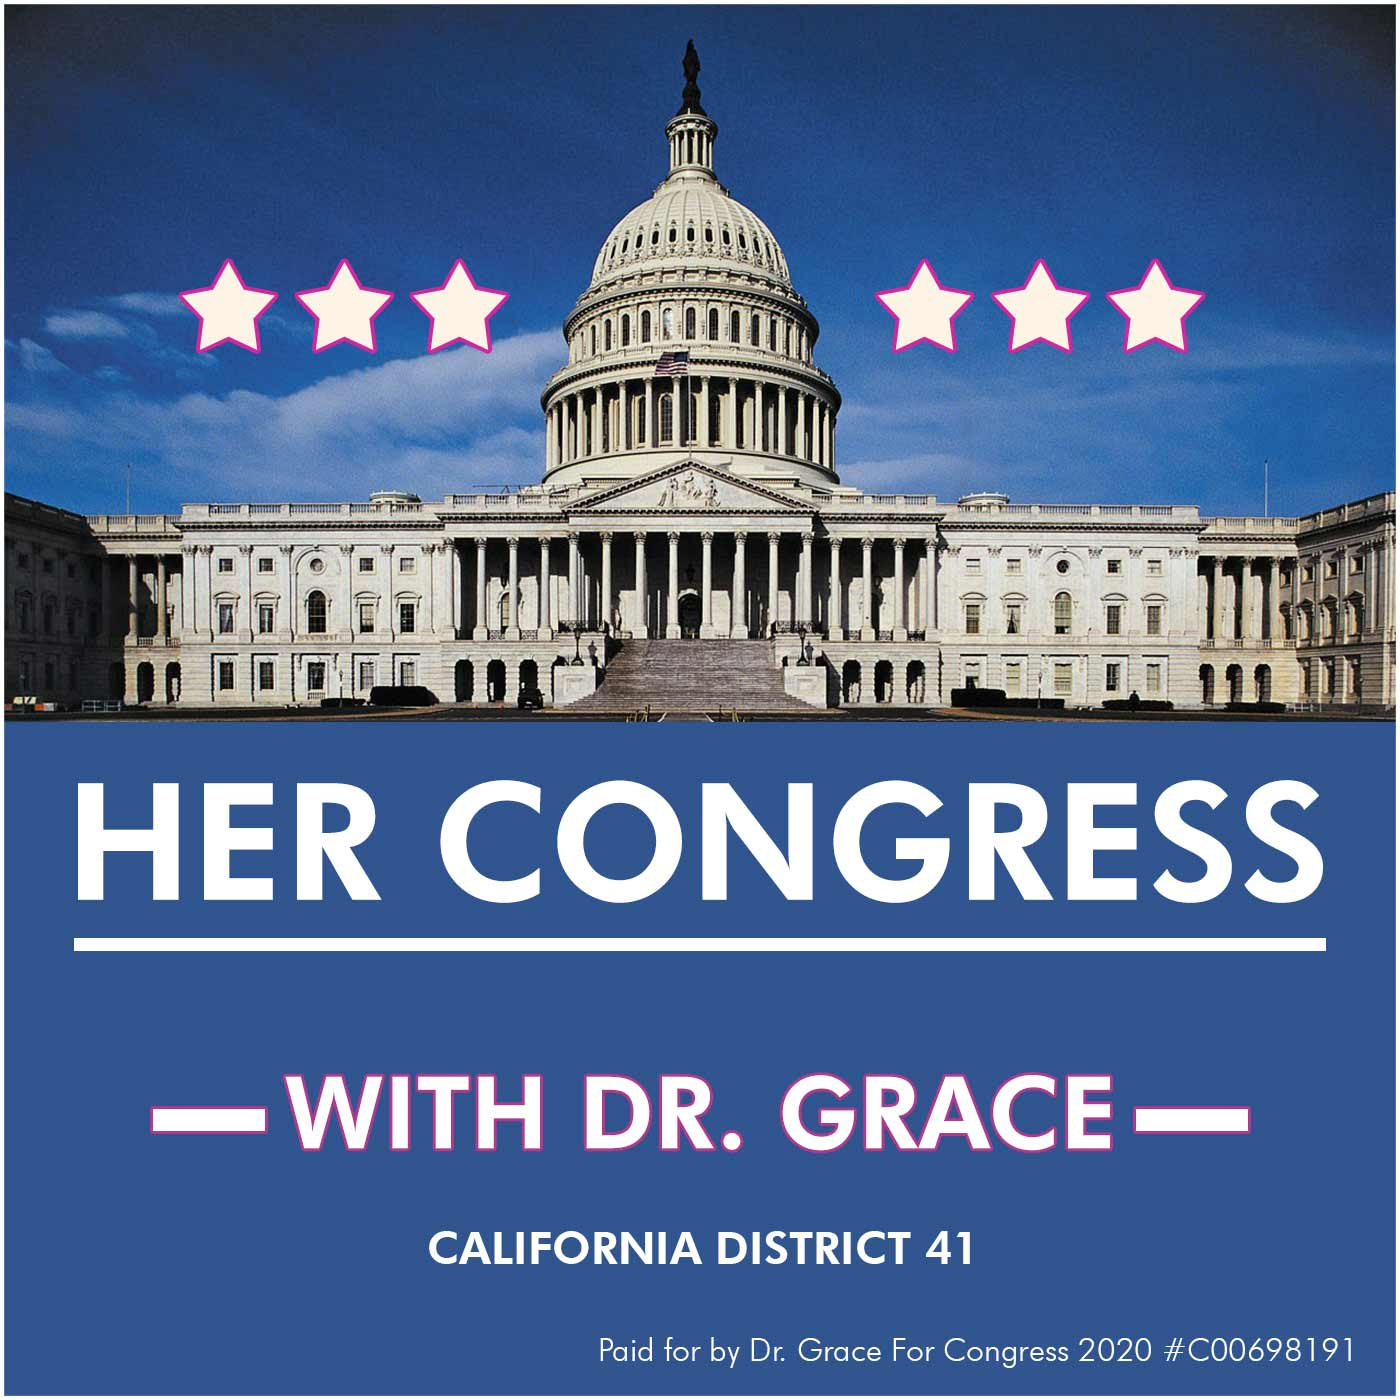 Her Congress with Dr. Grace